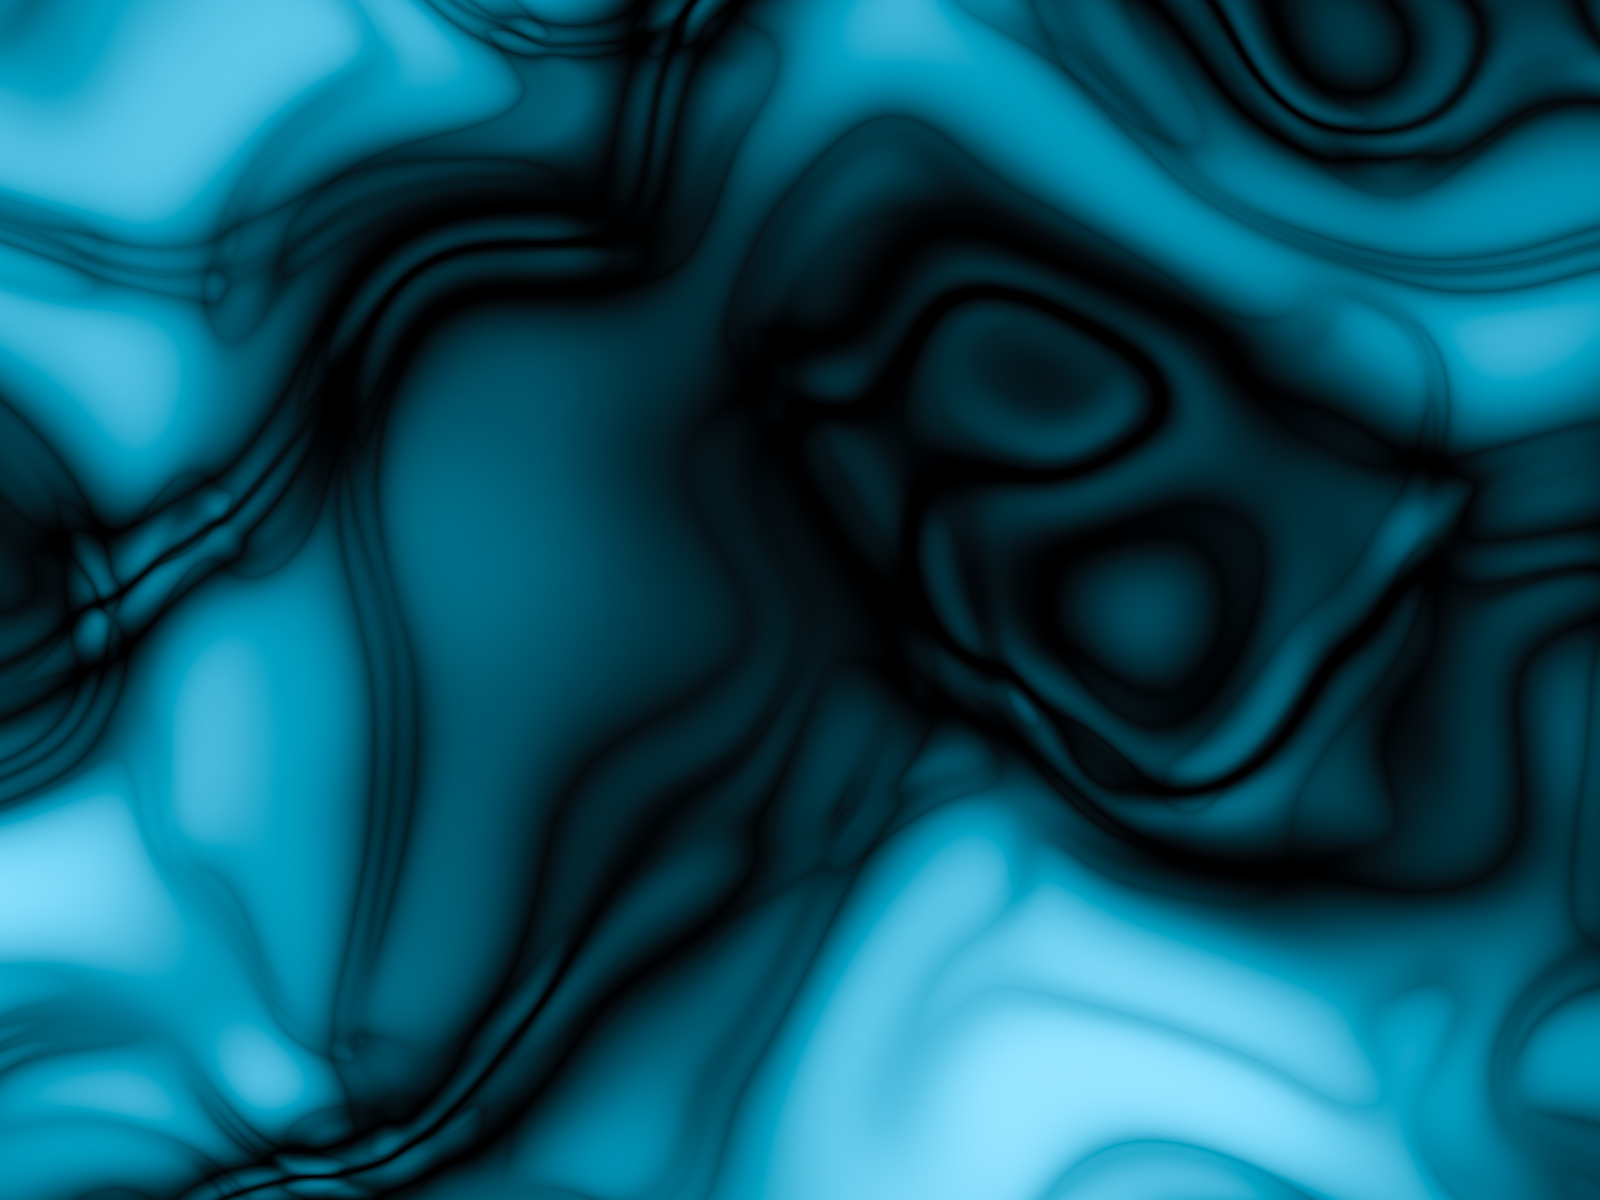 blue-black-matter-abstract-8k-0i.jpg